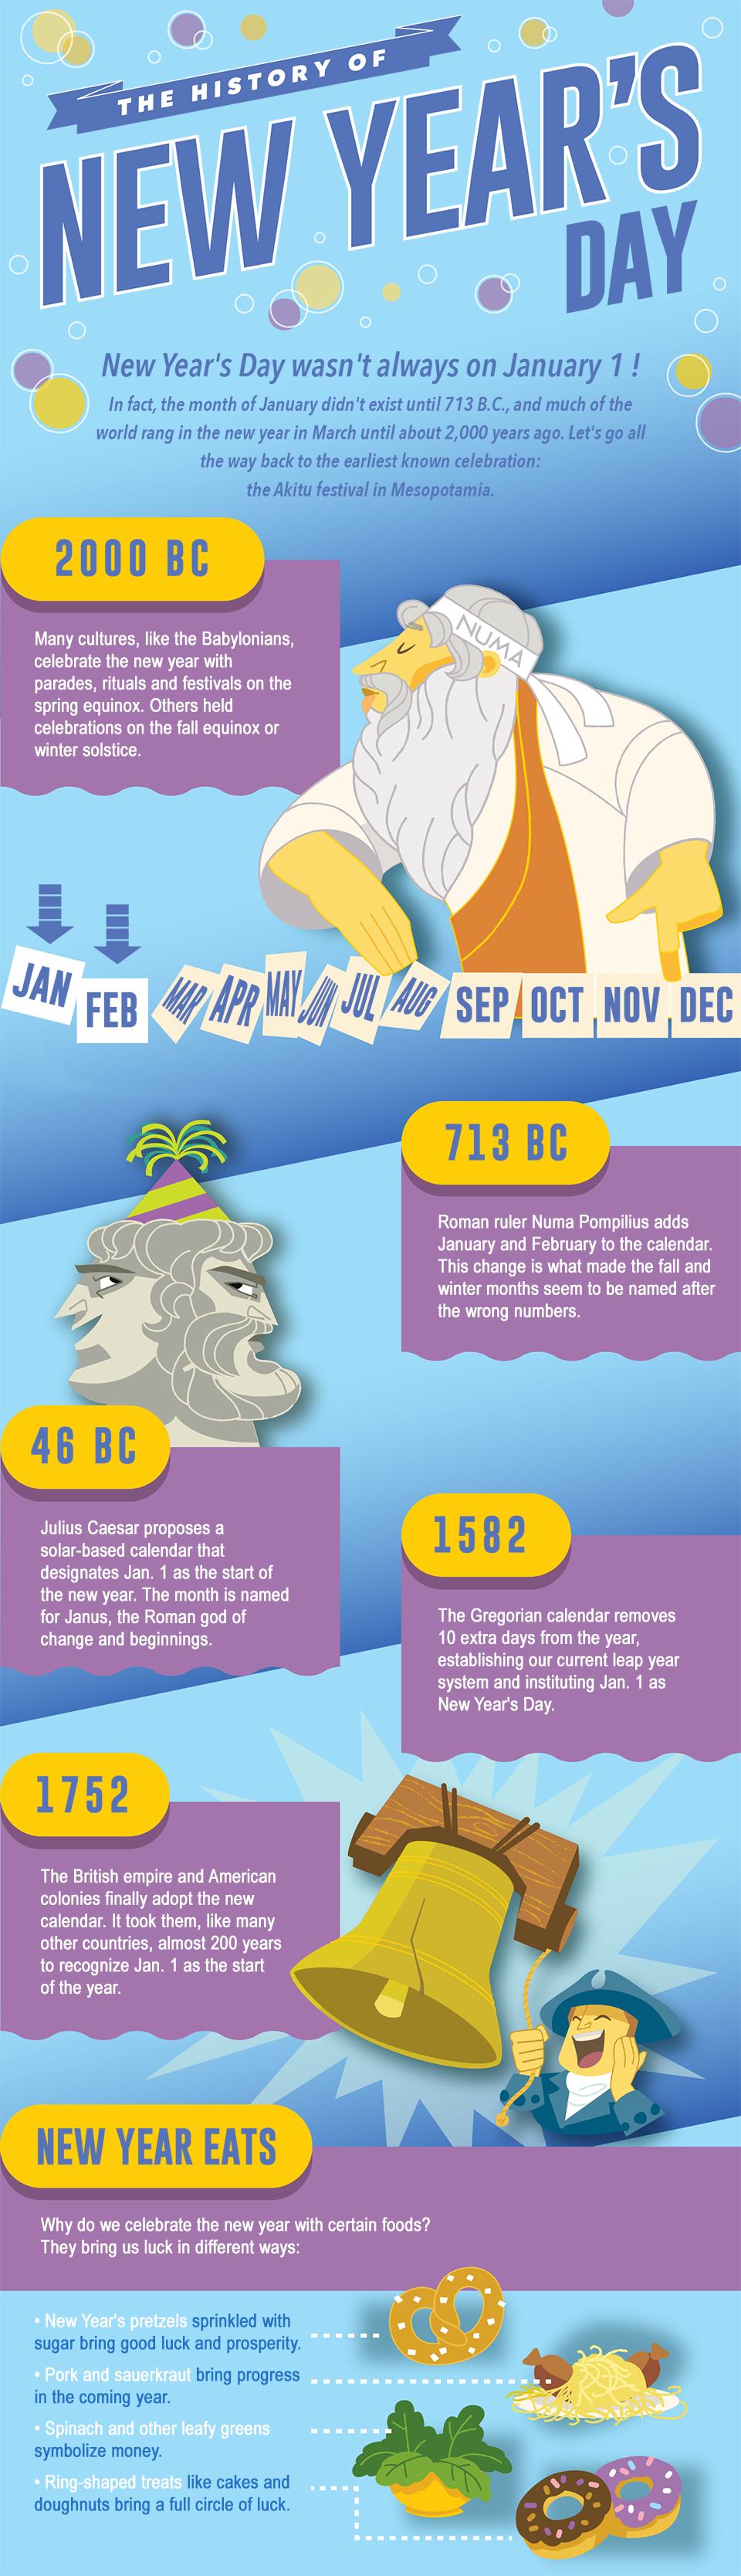 The History of New Year's Day infographic